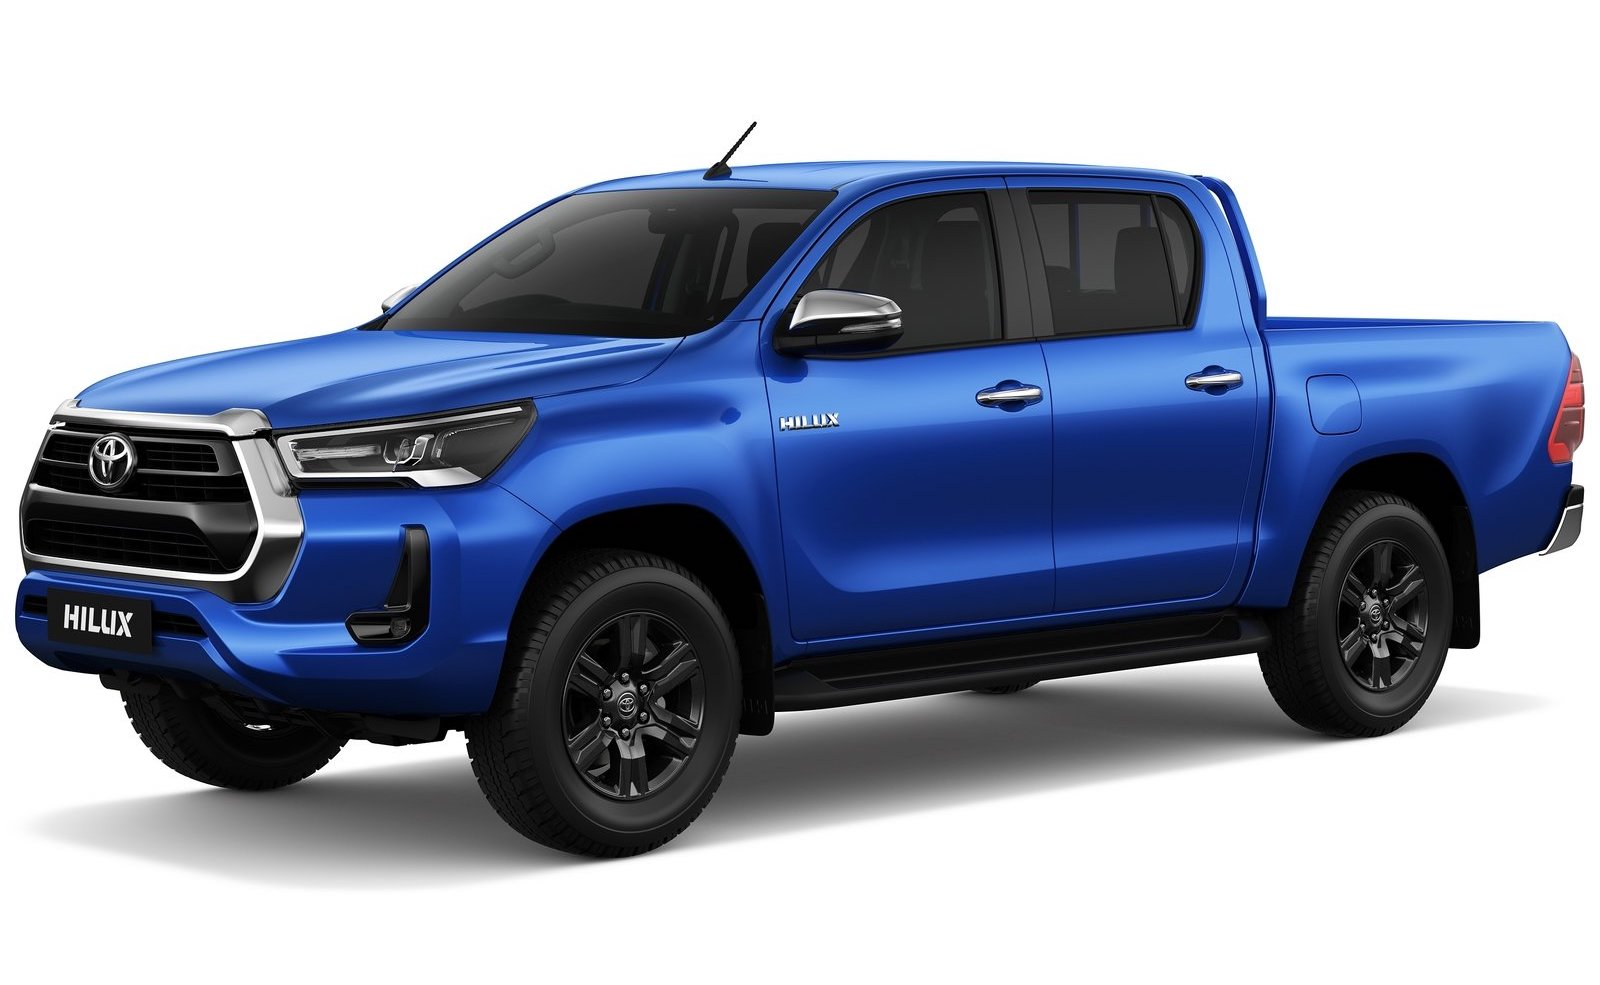 official: 2021 toyota hilux, more power for 2.8 turbo